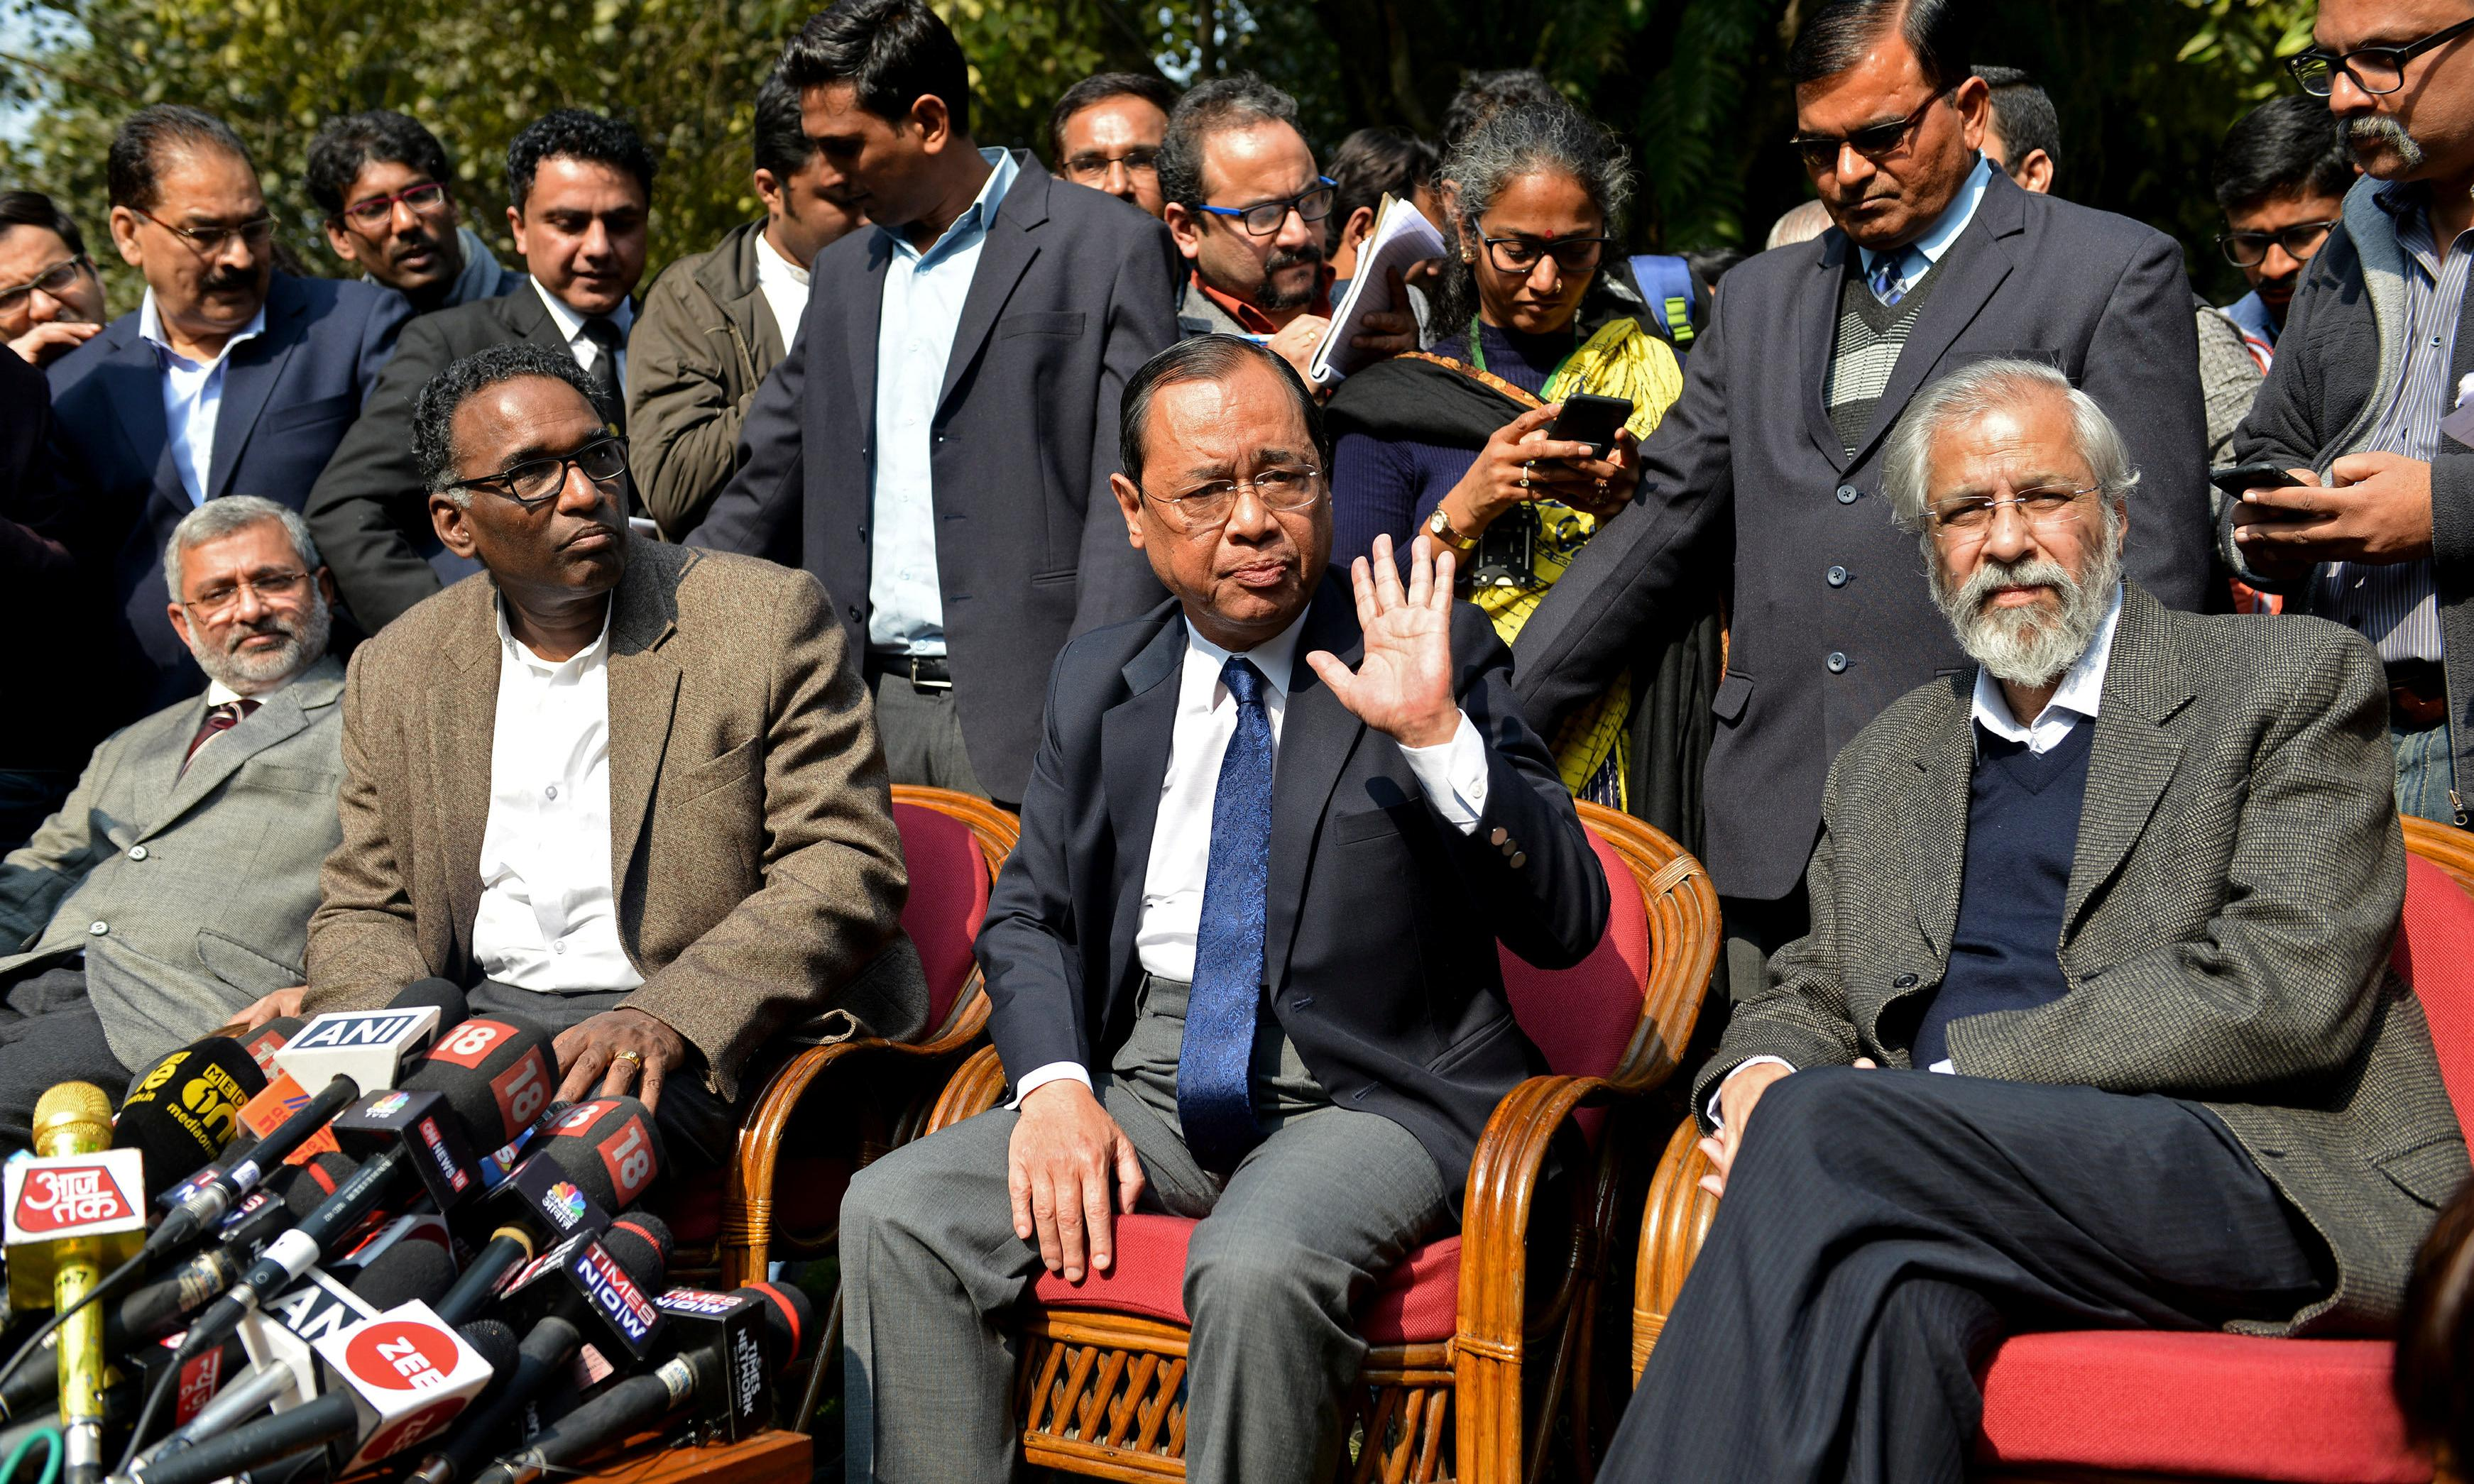 India's top judges issue unprecedented warning over integrity of supreme court